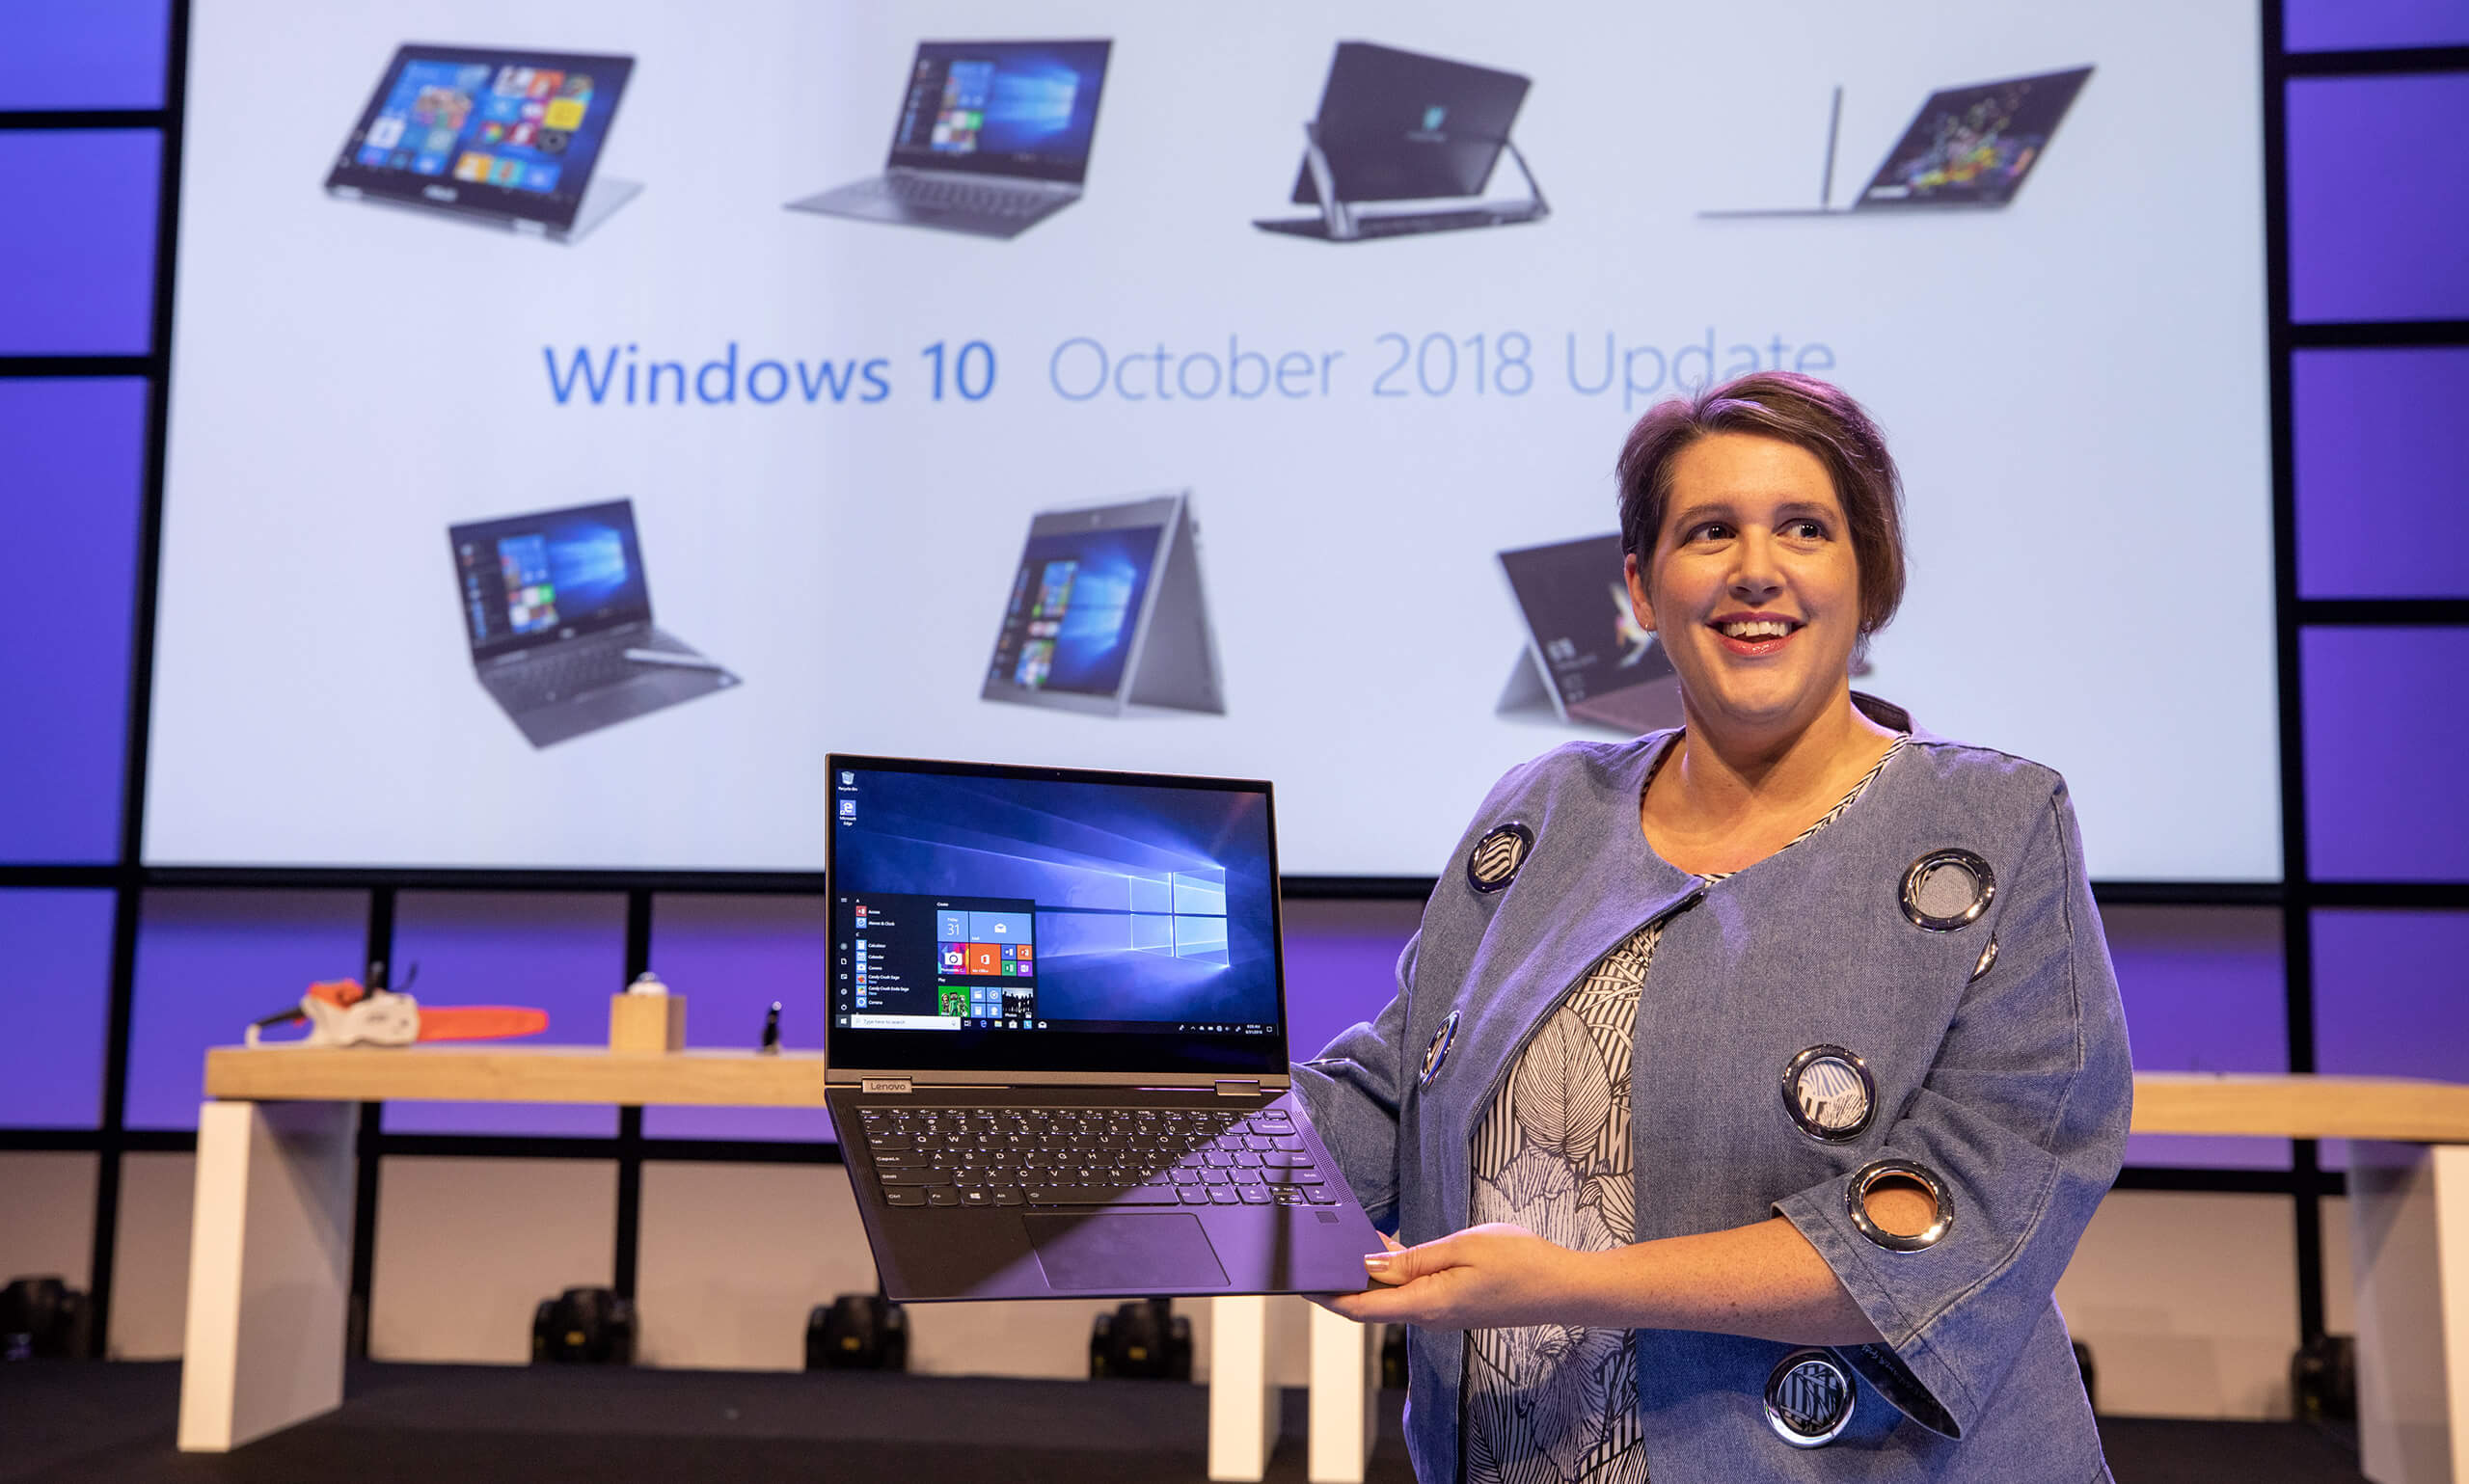 Microsoft confirms the Windows 10 October 2018 Update is arriving